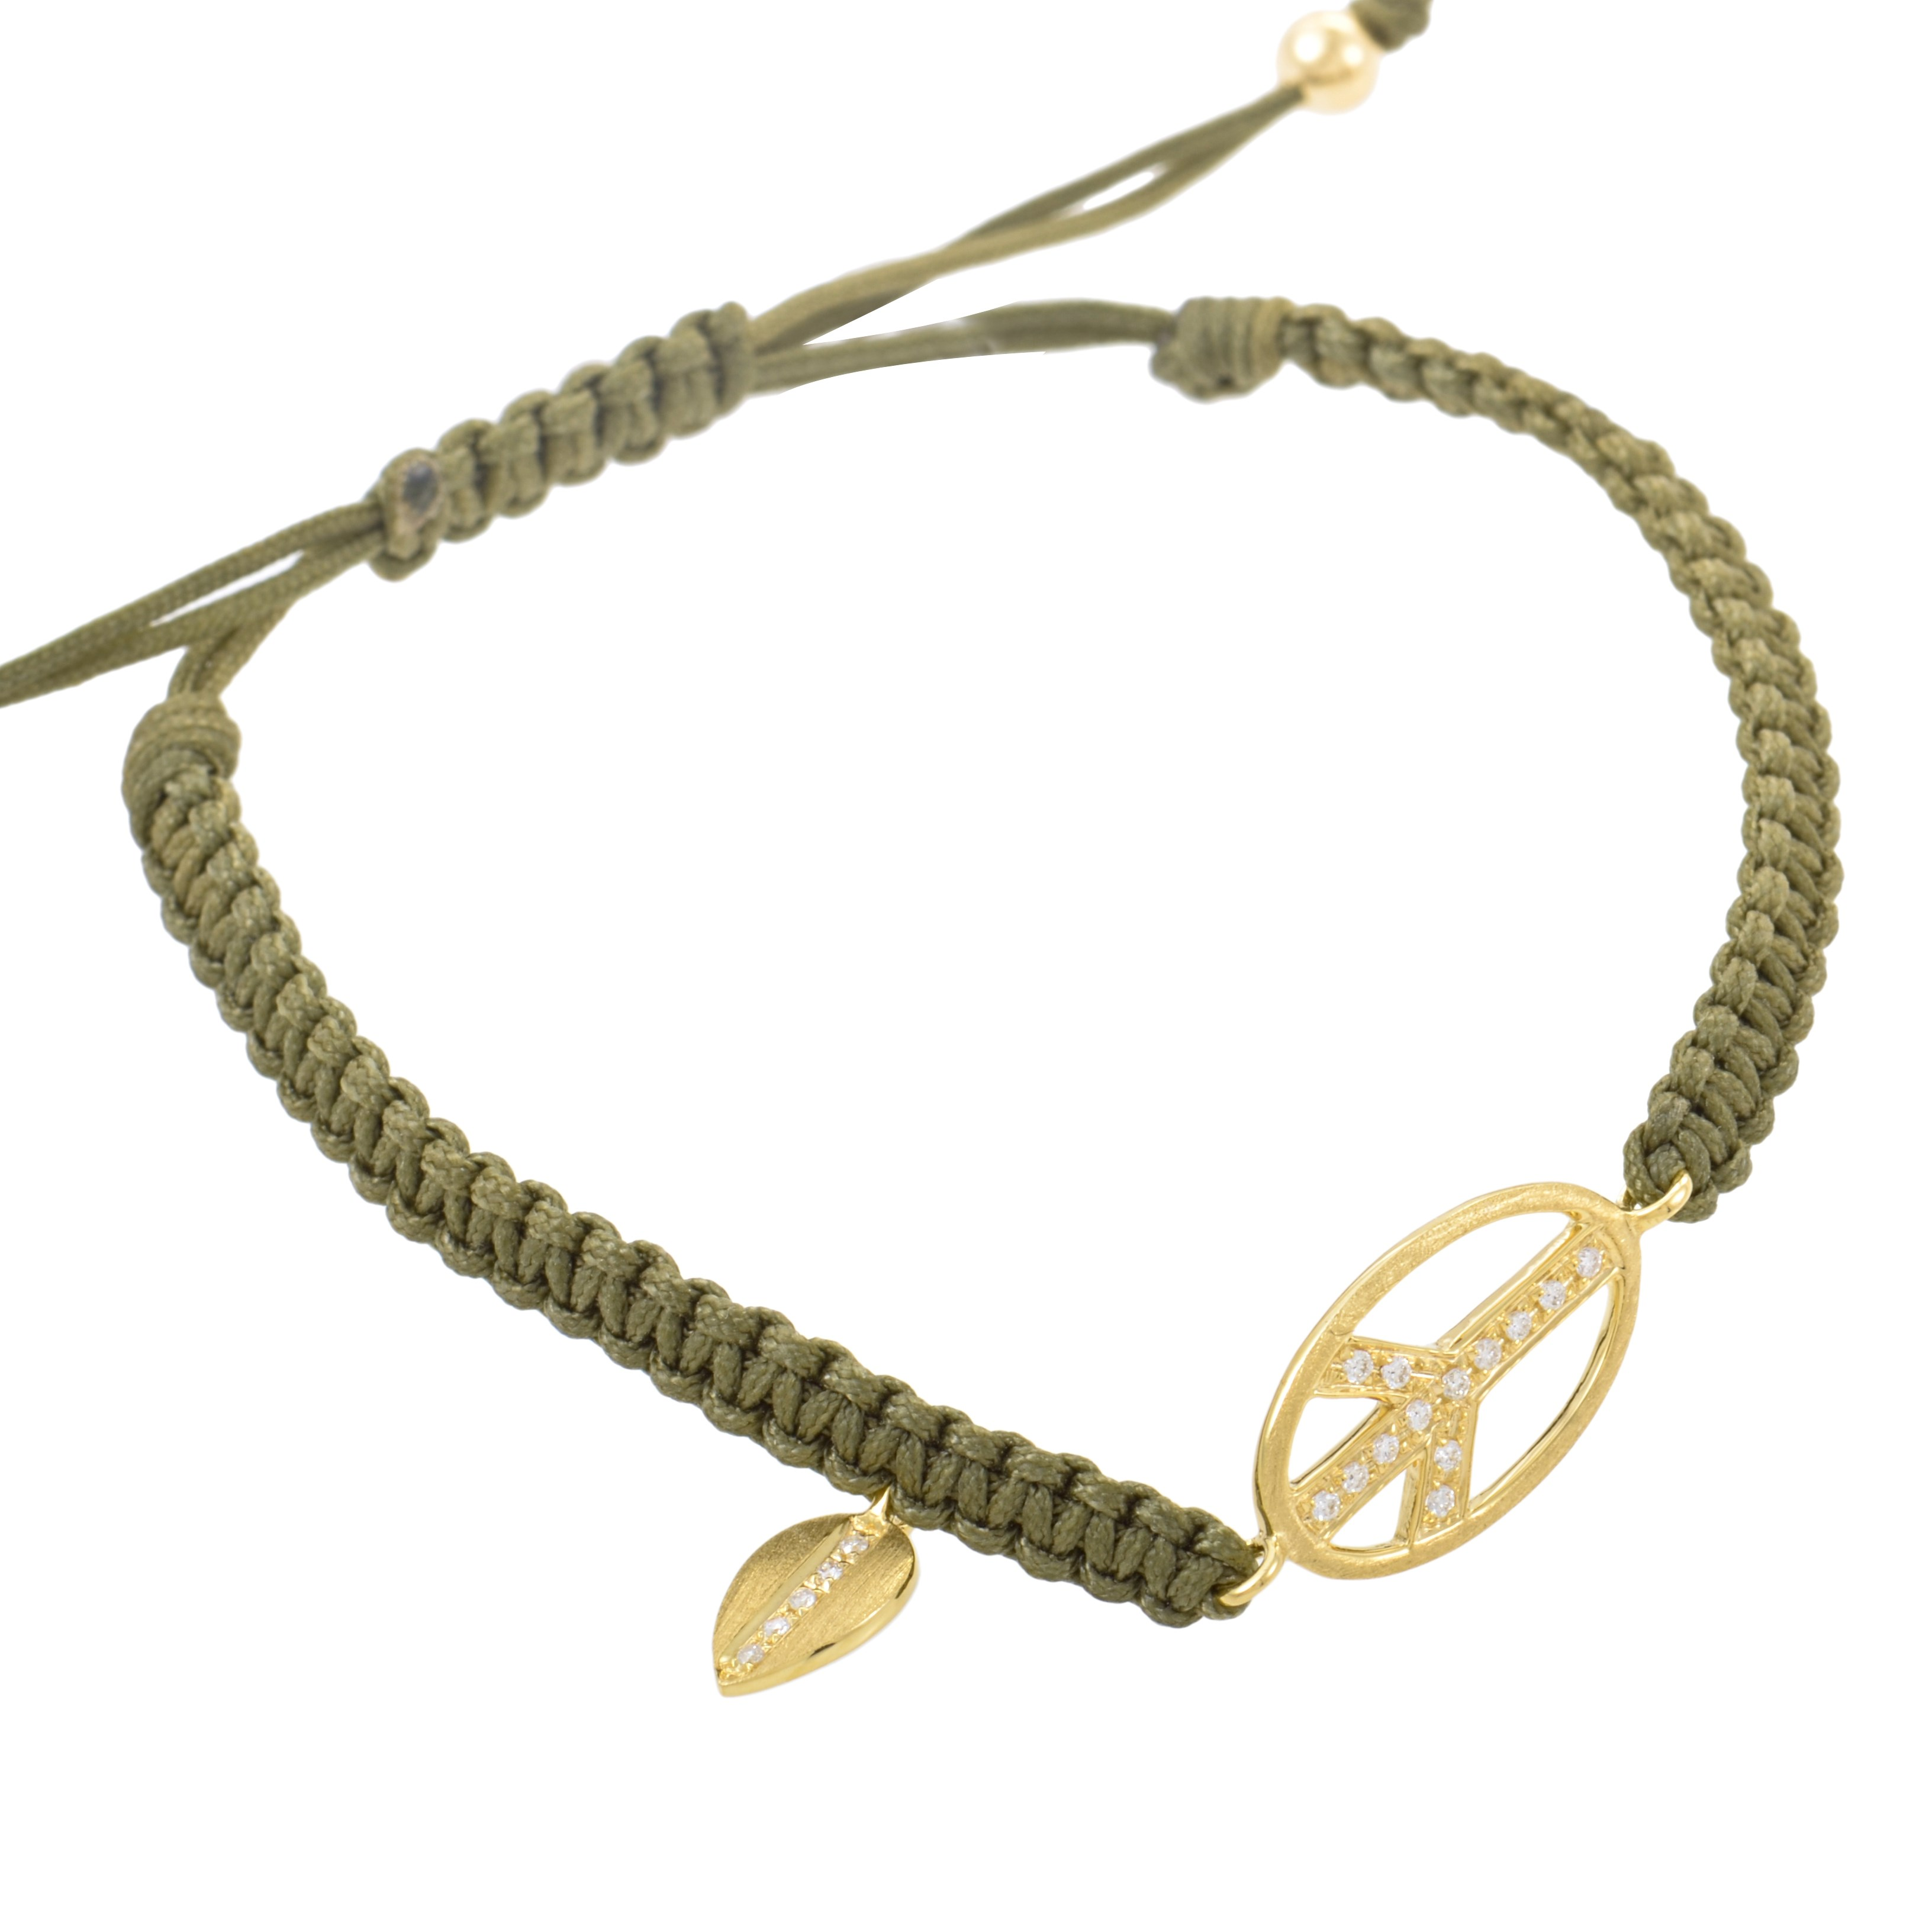 18K Yellow Gold & Diamond Peace Sign Knitted Bracelet BT587TUZZGRN